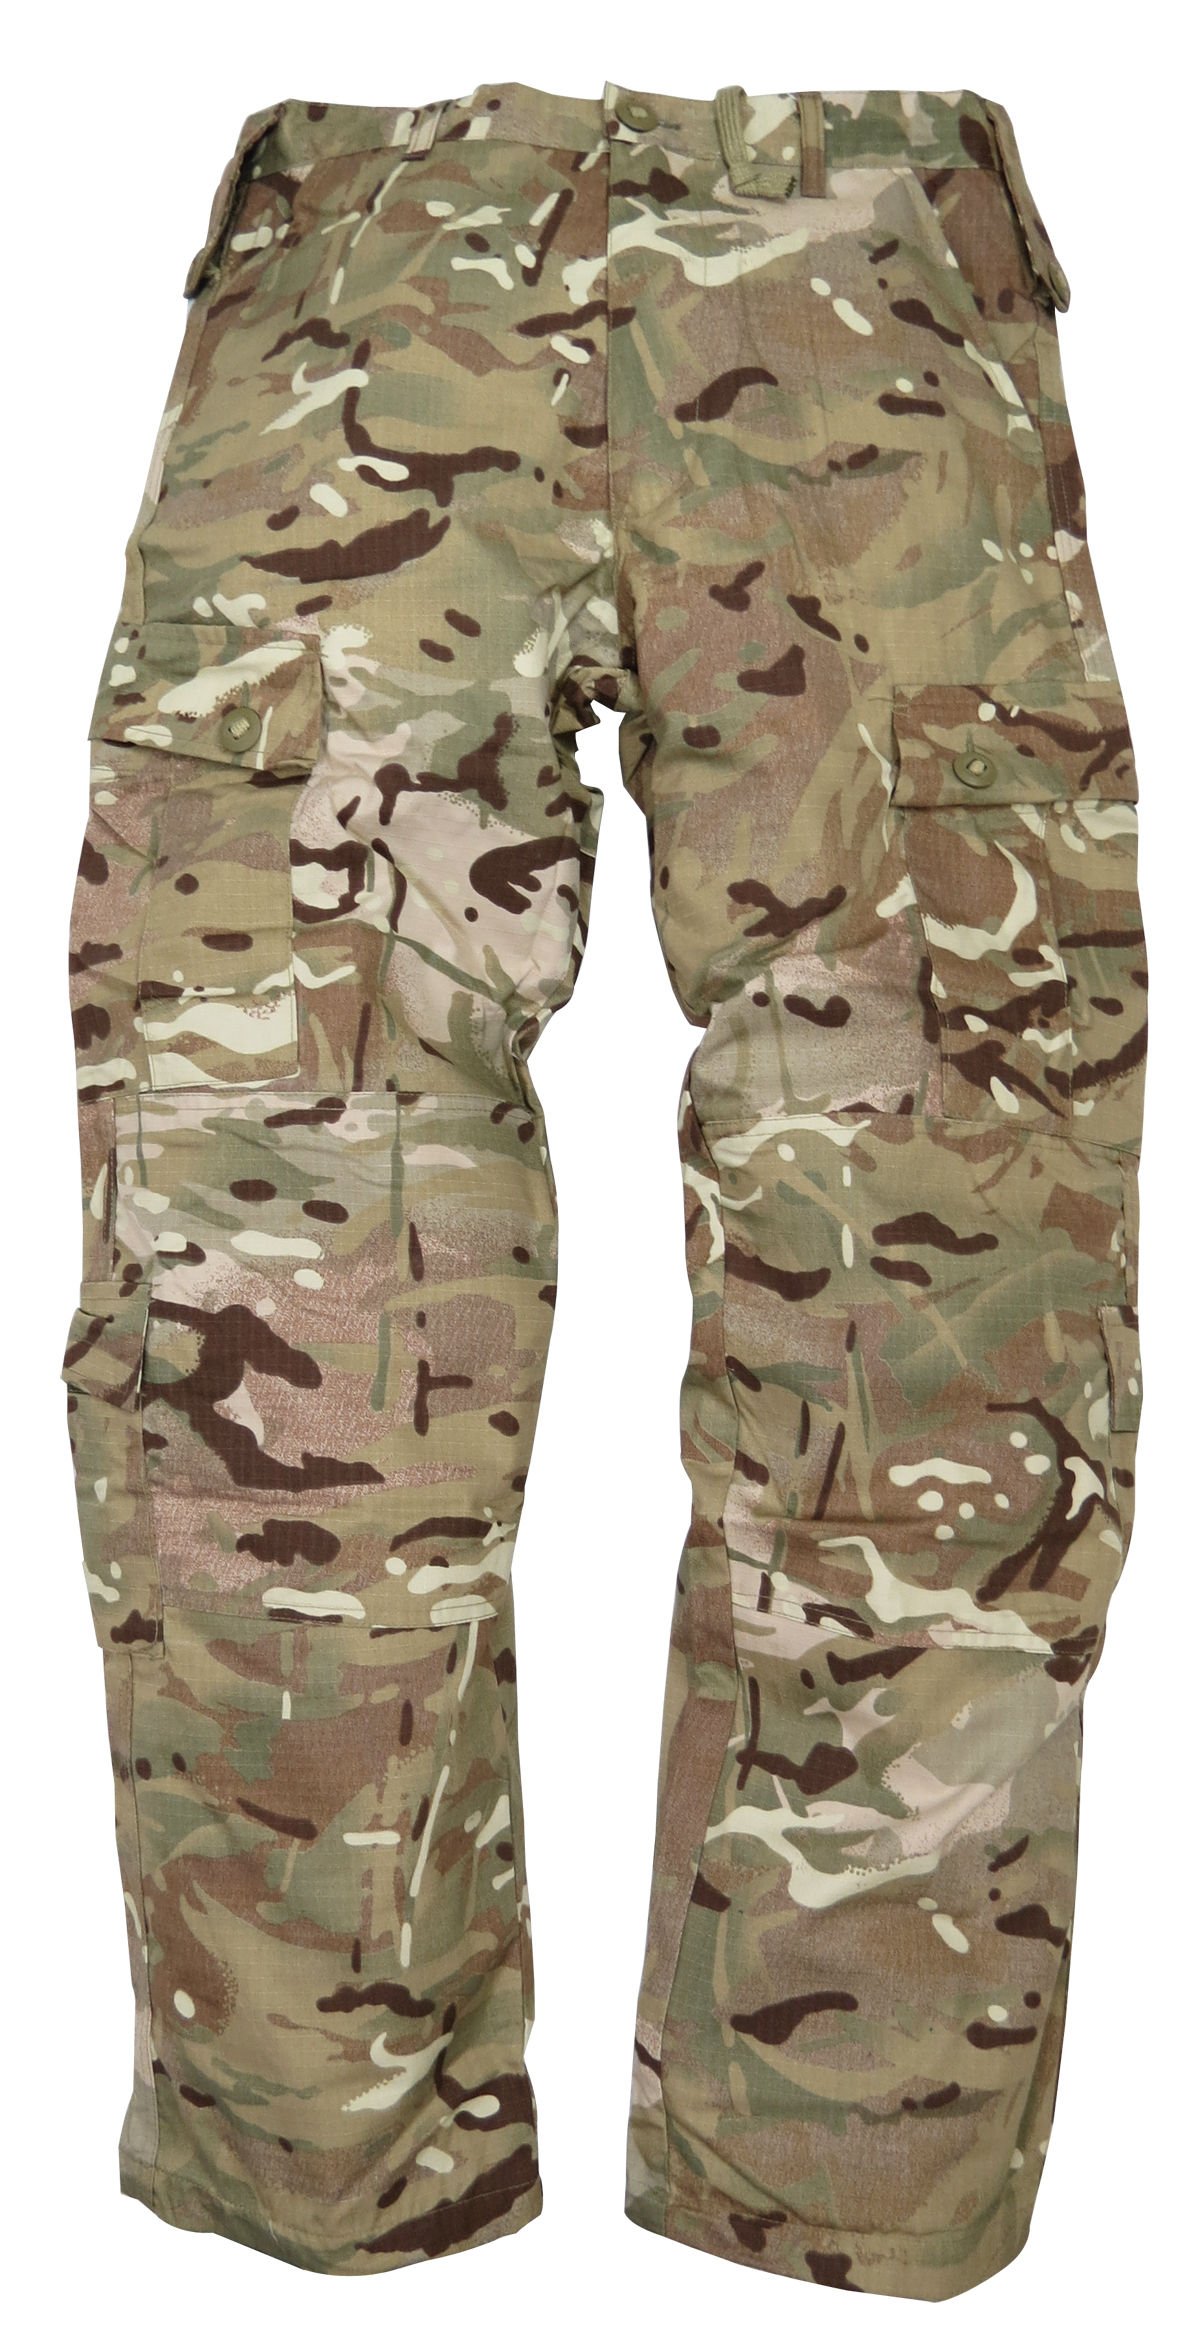 british army style ripstop elite hmtc trousers by highlander